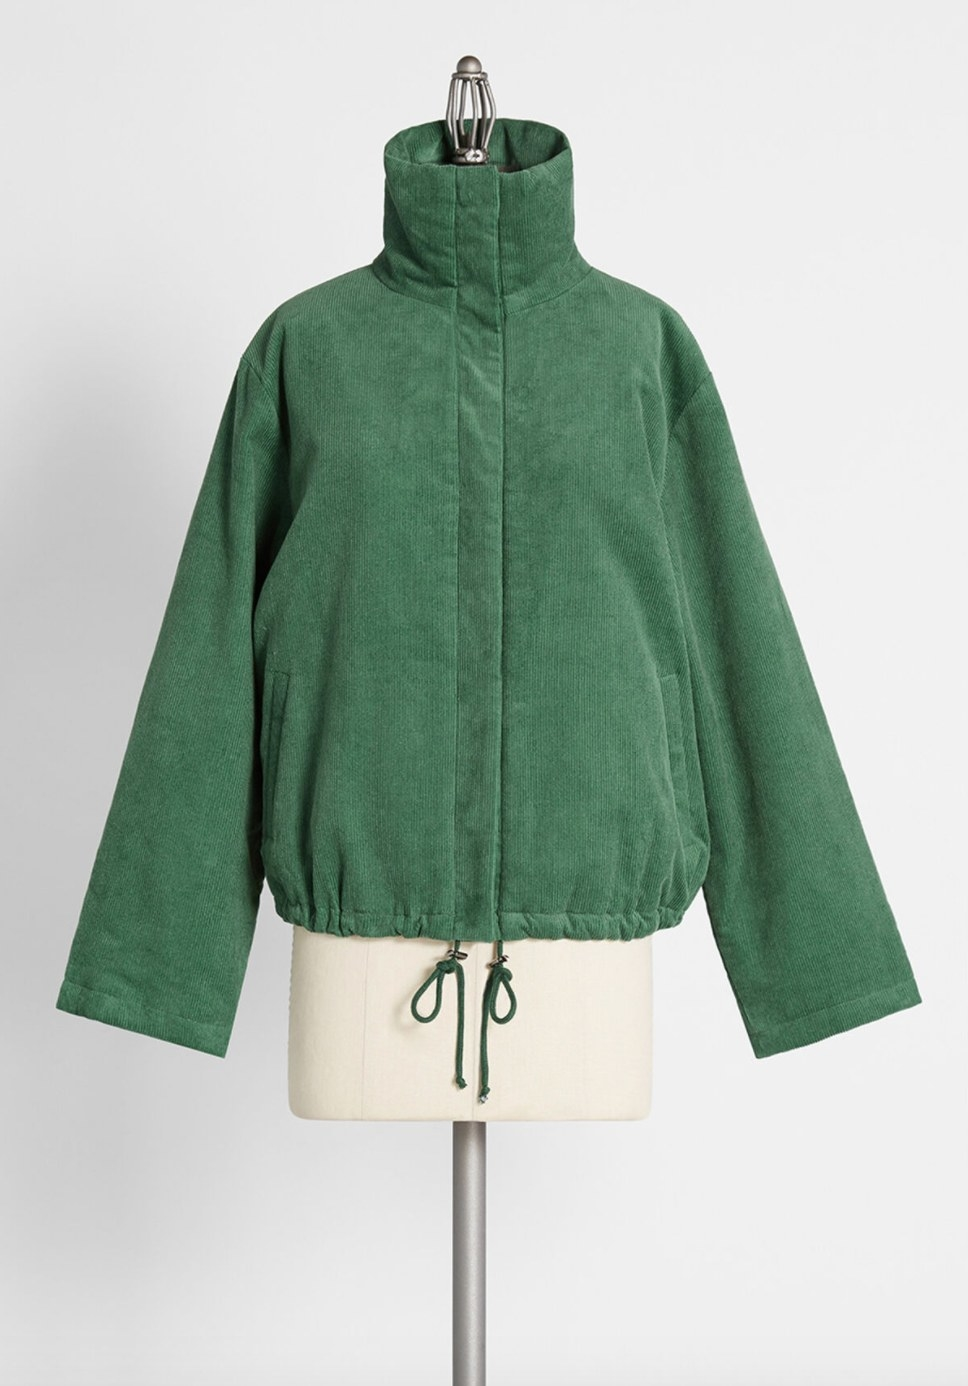 The sugar snap jacket in green